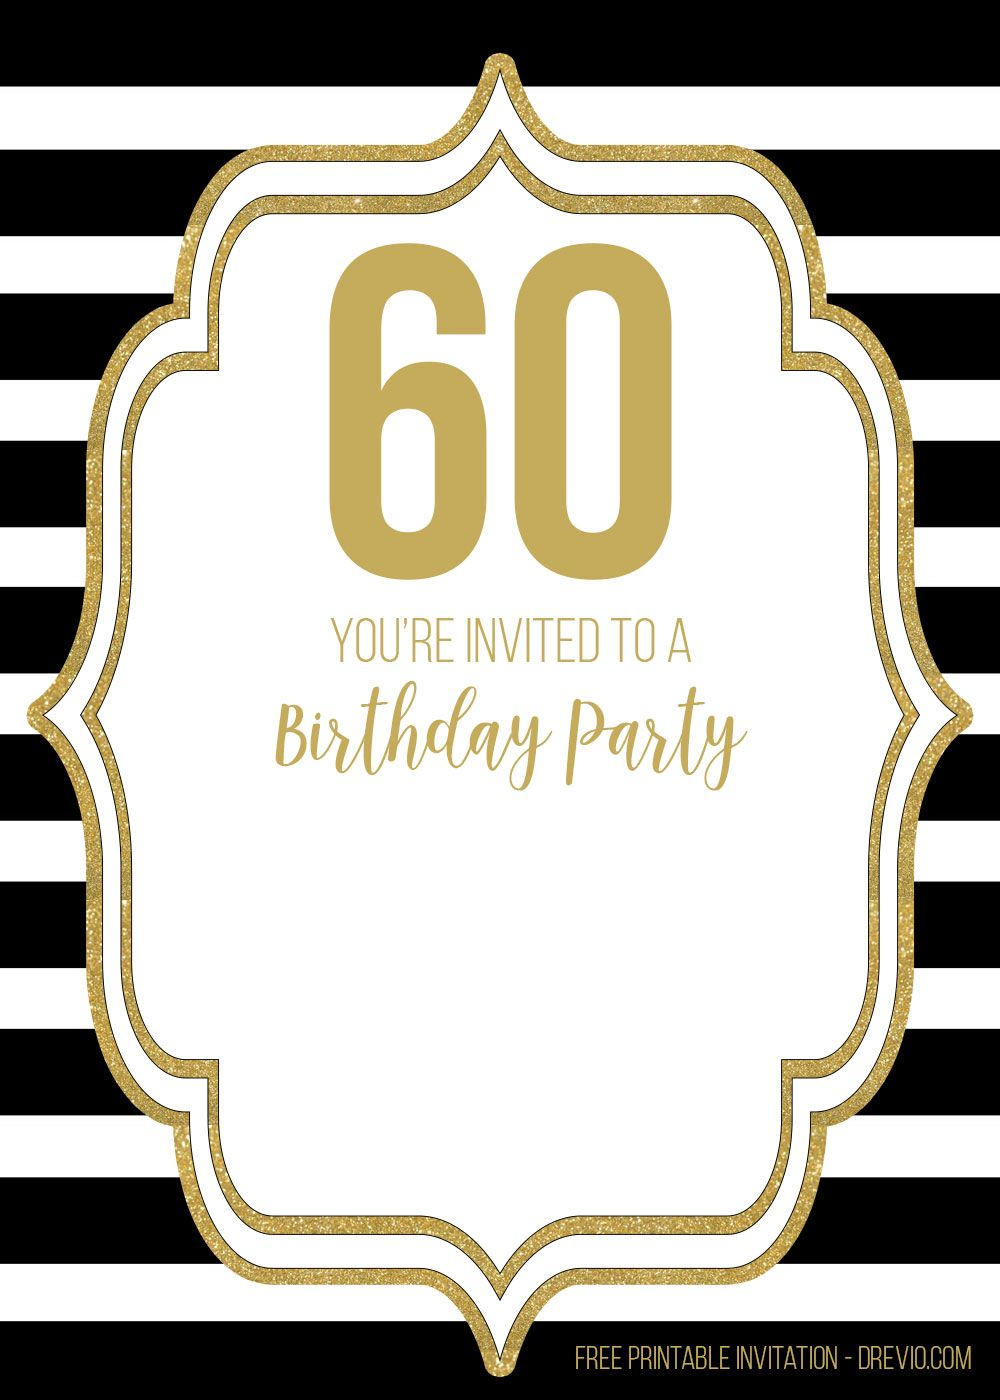 Free Printable Black And Gold 60th Birthday Invitation Templates Drevio Party Invite Template 60th Birthday Invitations Printable Birthday Invitations